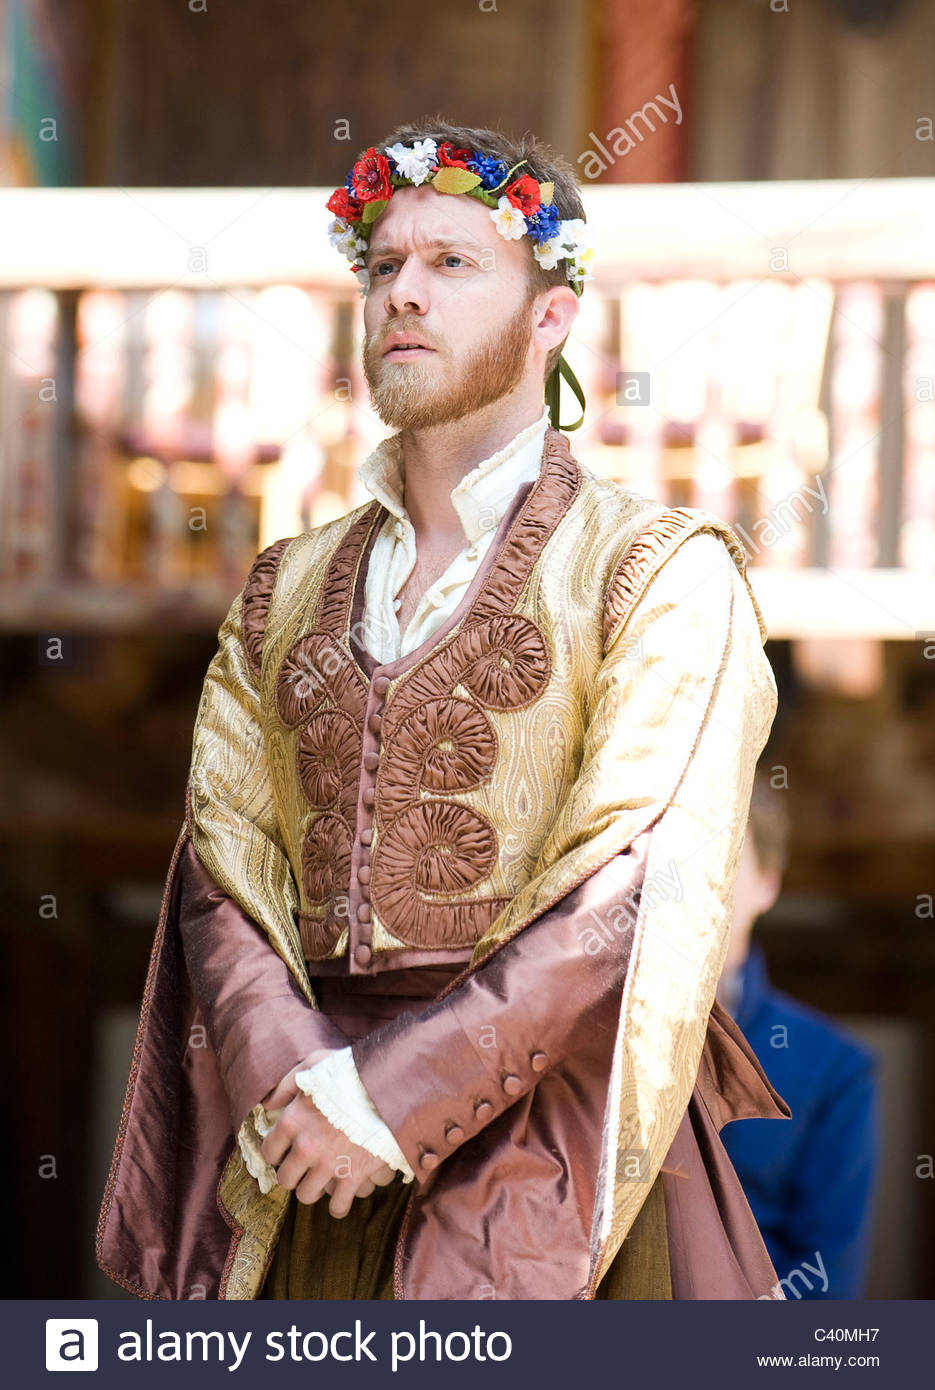 Much Ado About Nothing by William Shakespeare, directed by Jeremy Herrin - Stock Image